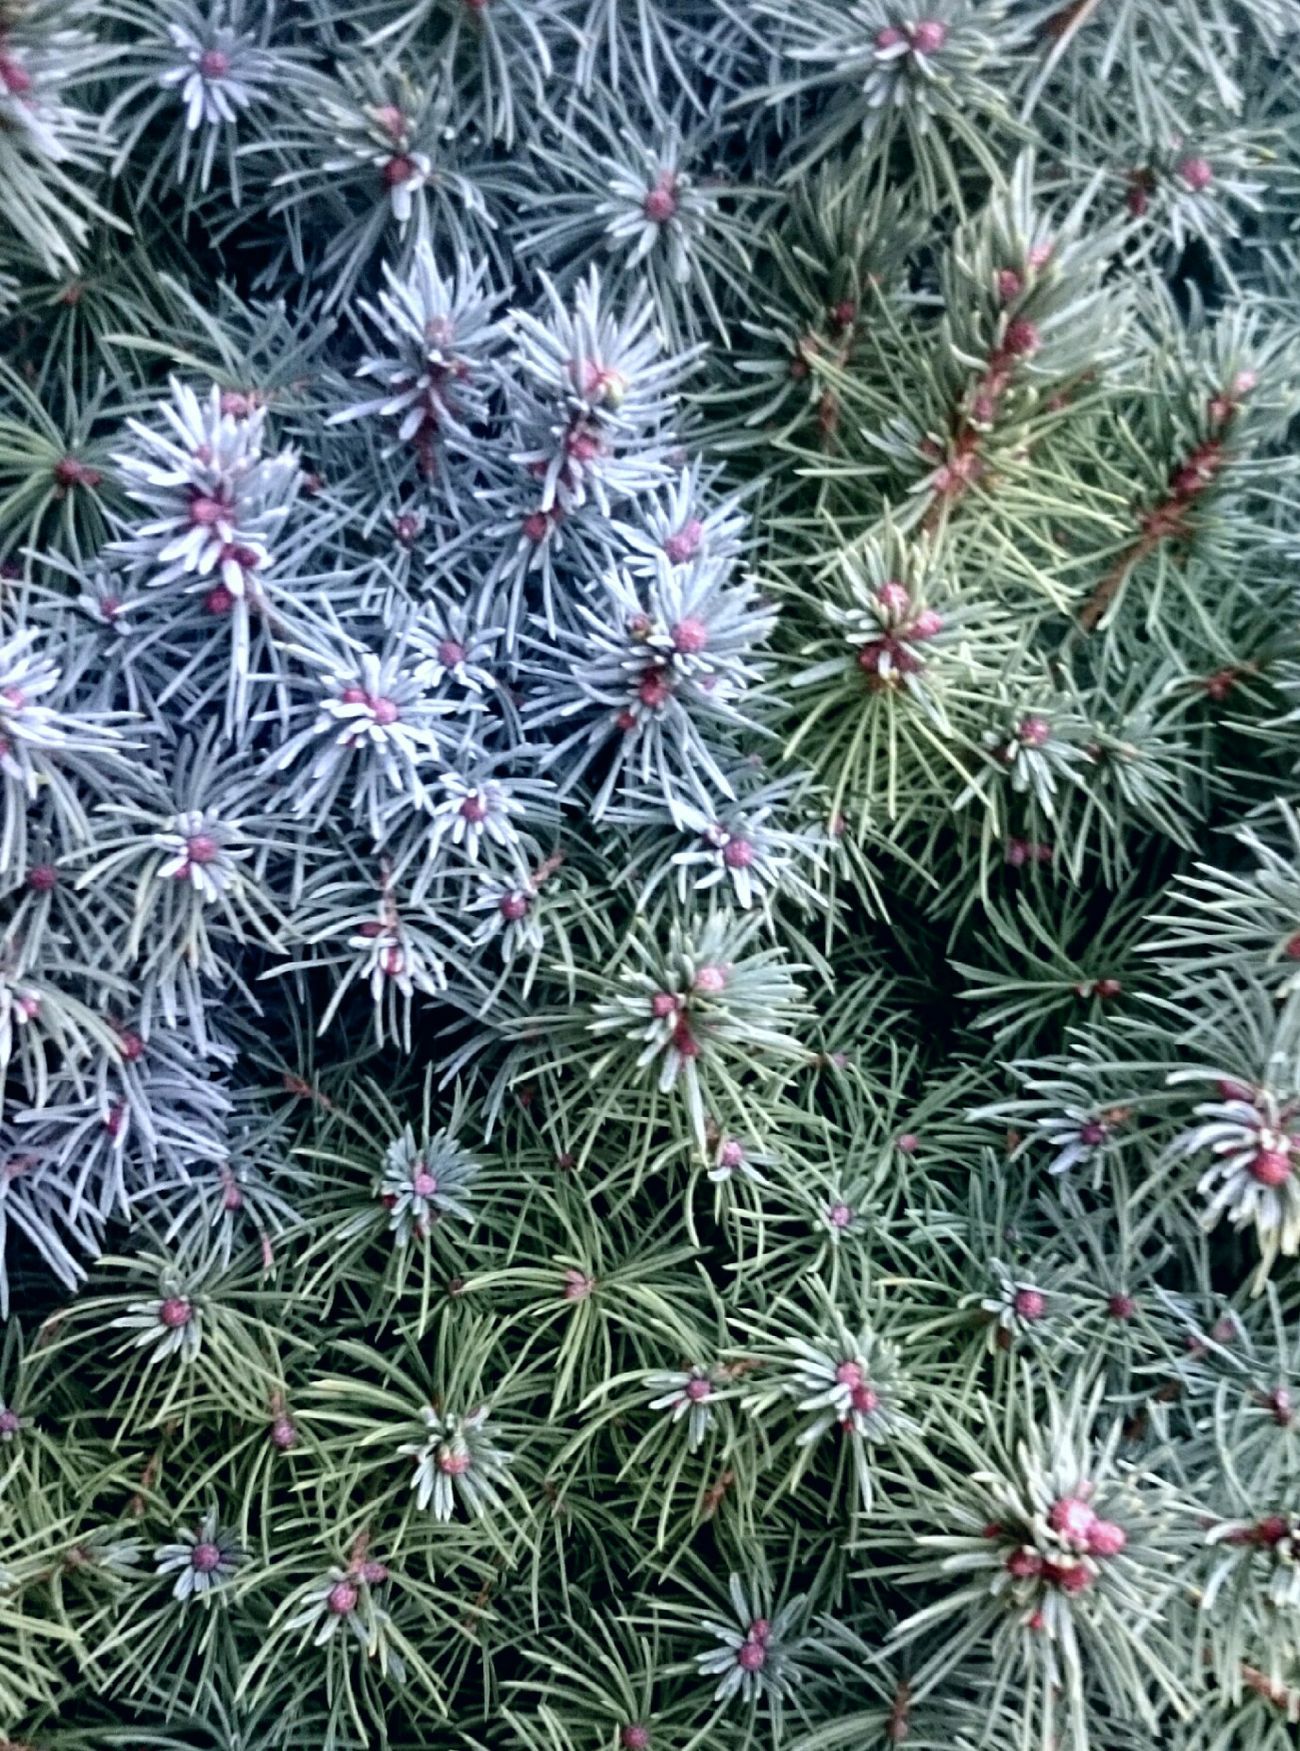 Backgrounds Growth Plant Outdoors Tree Nature Leicadualcamera HuaweiP9 Full Frame No People High Angle View Close-up Spiky Day Needle - Plant Part